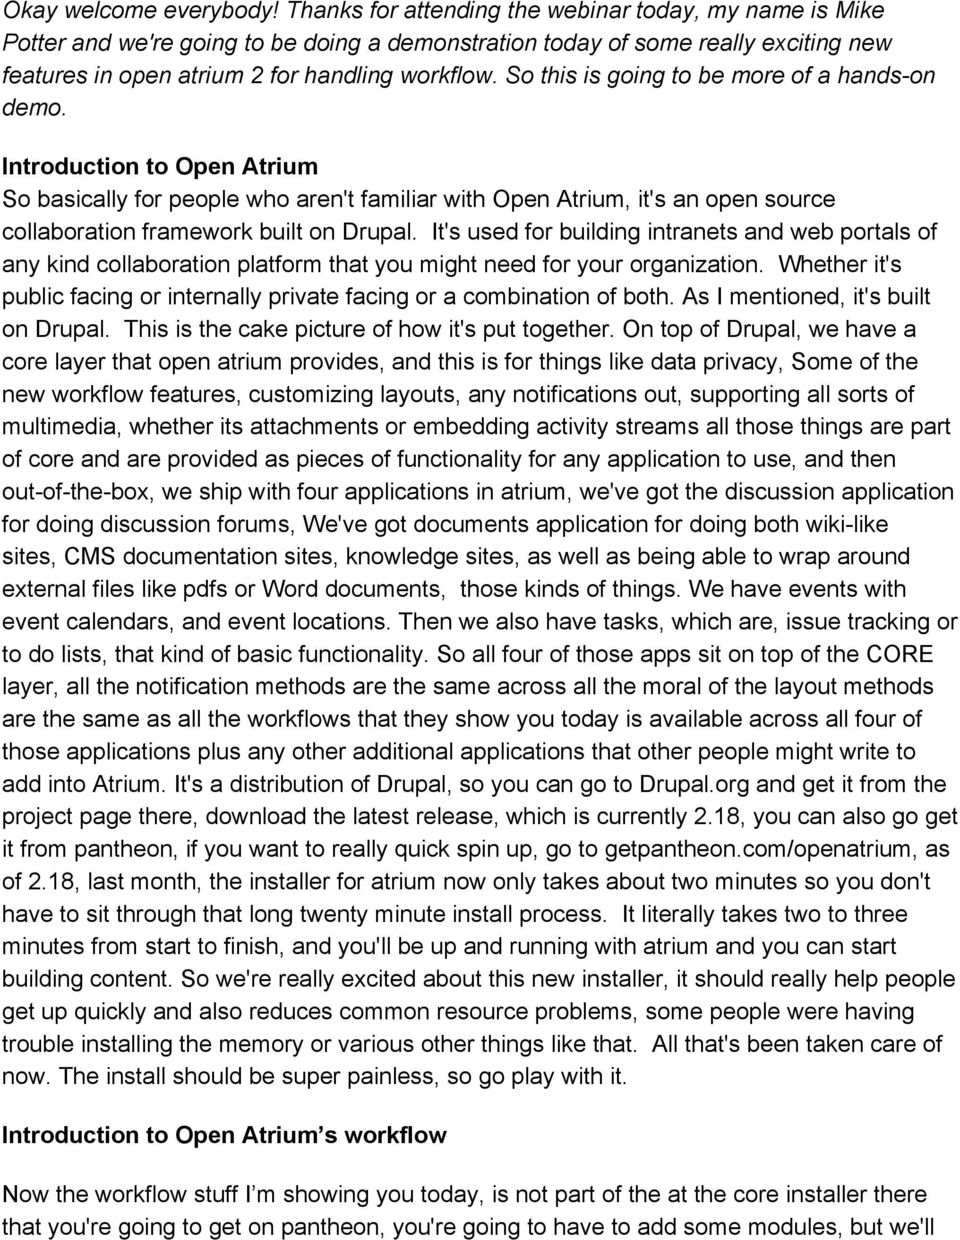 So this is going to be more of a hands on demo. Introduction to Open Atrium So basically for people who aren't familiar with Open Atrium, it's an open source collaboration framework built on Drupal.